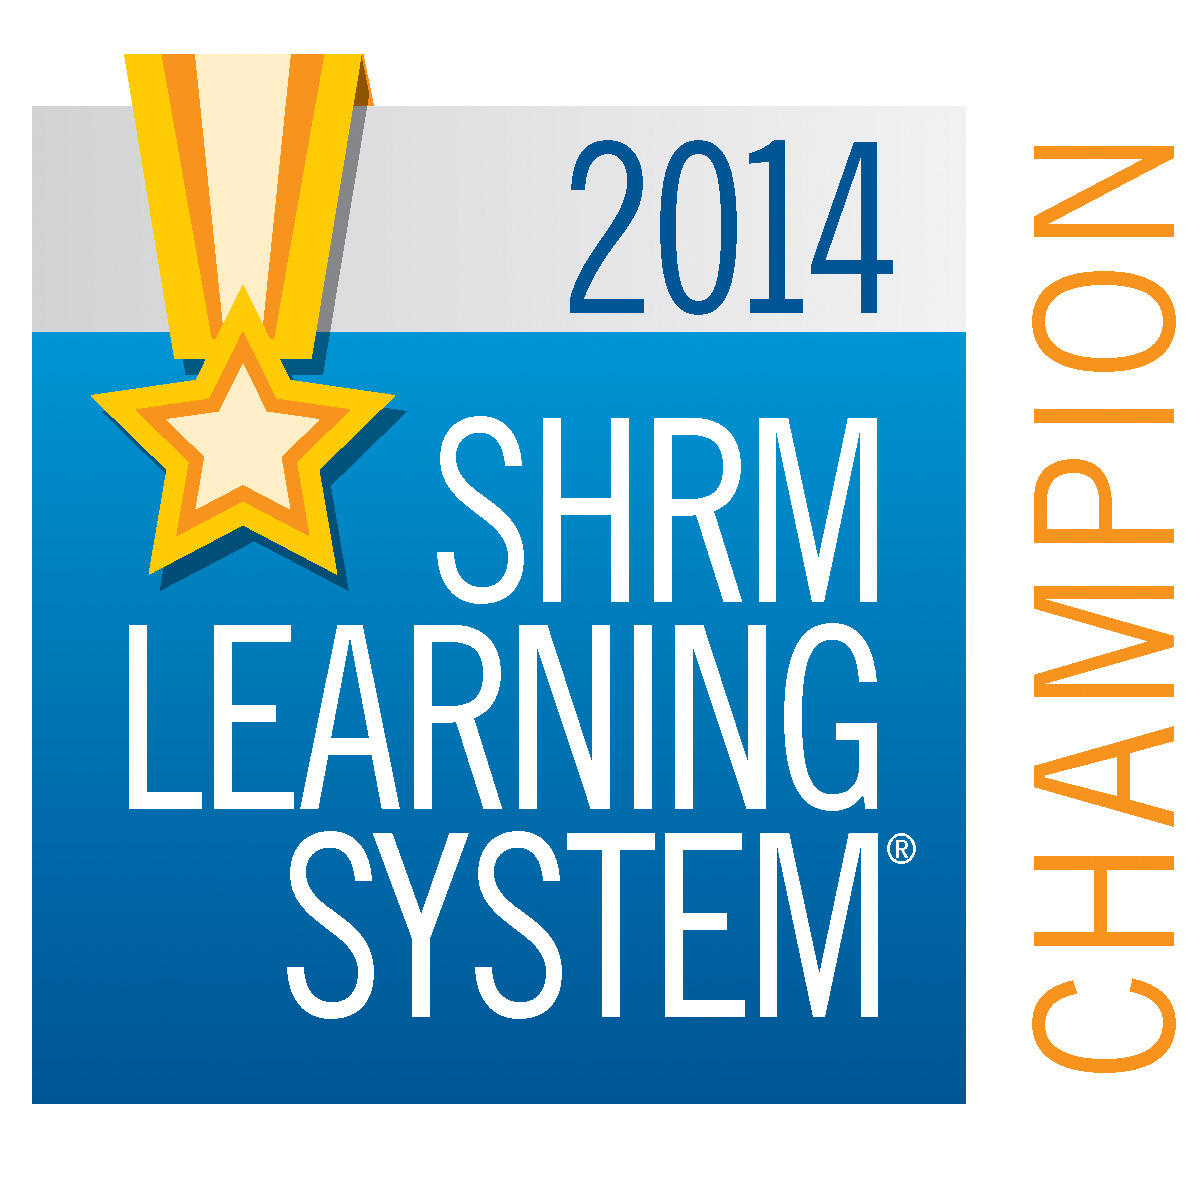 2014 SHRM Learning System Champion